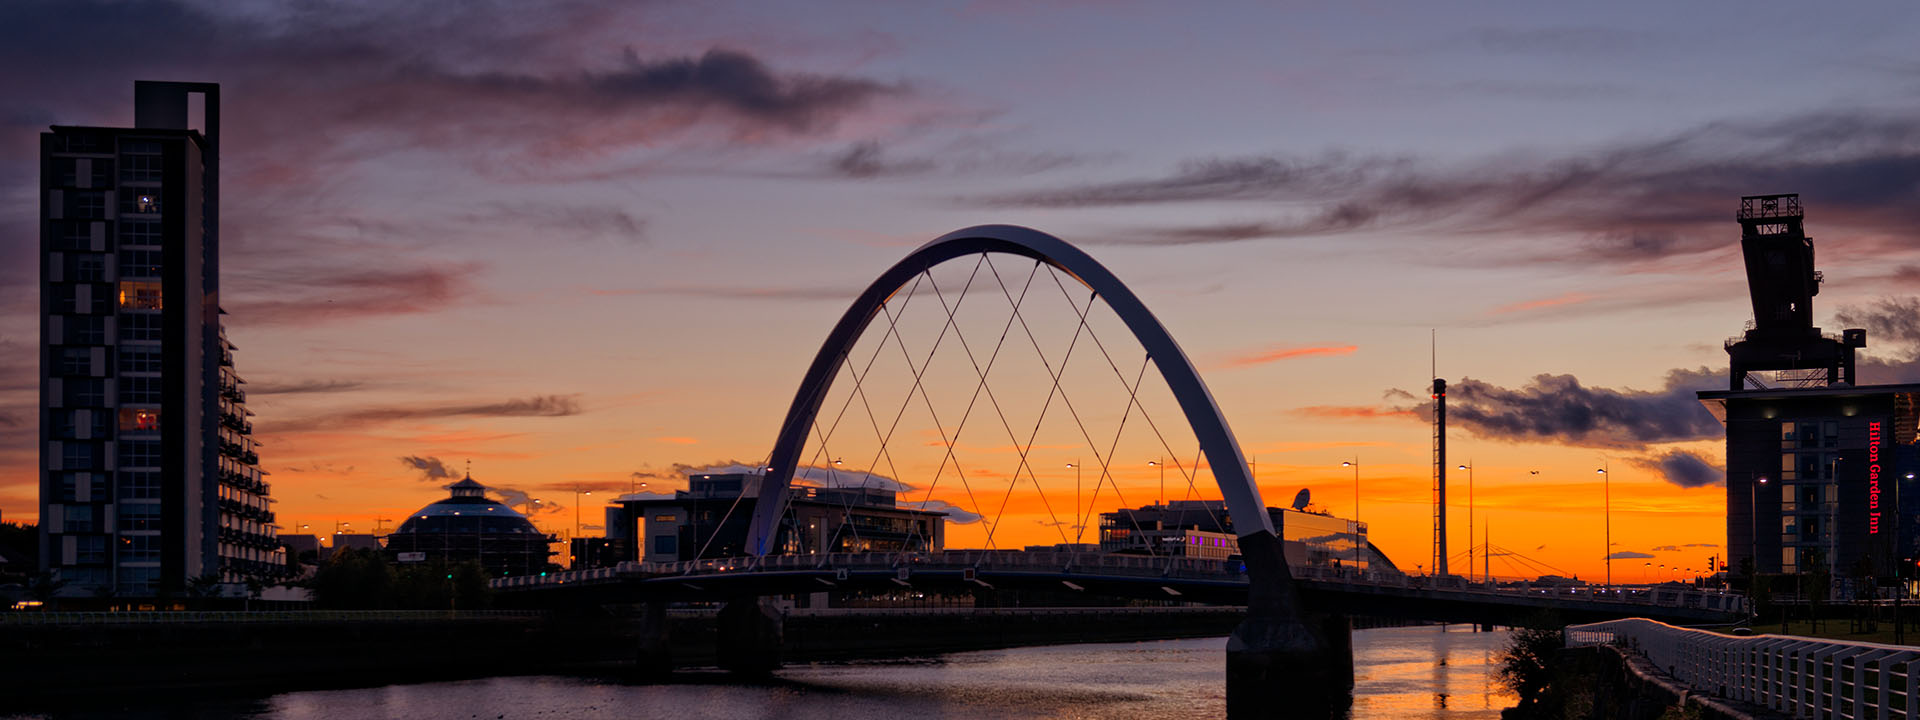 Sunset photo of the Clyde Arc in Glasgow, UK